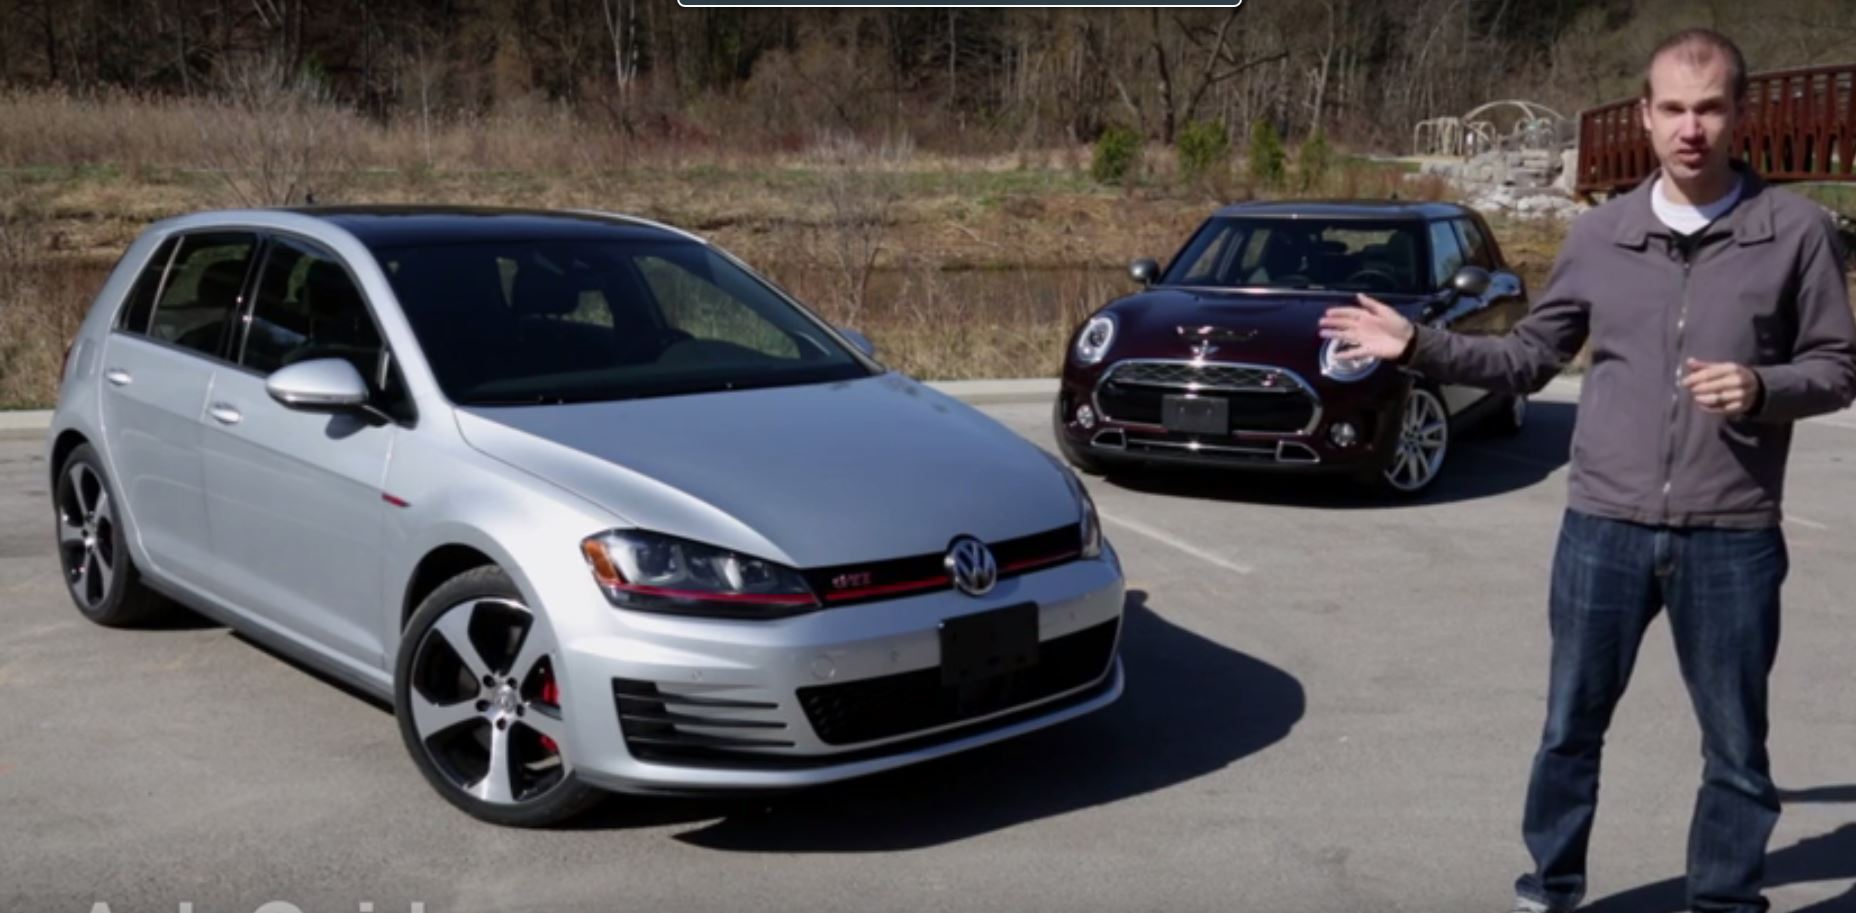 2016 Golf Gti Vs Mini Cooper S Clubman Comparison Comes Down To